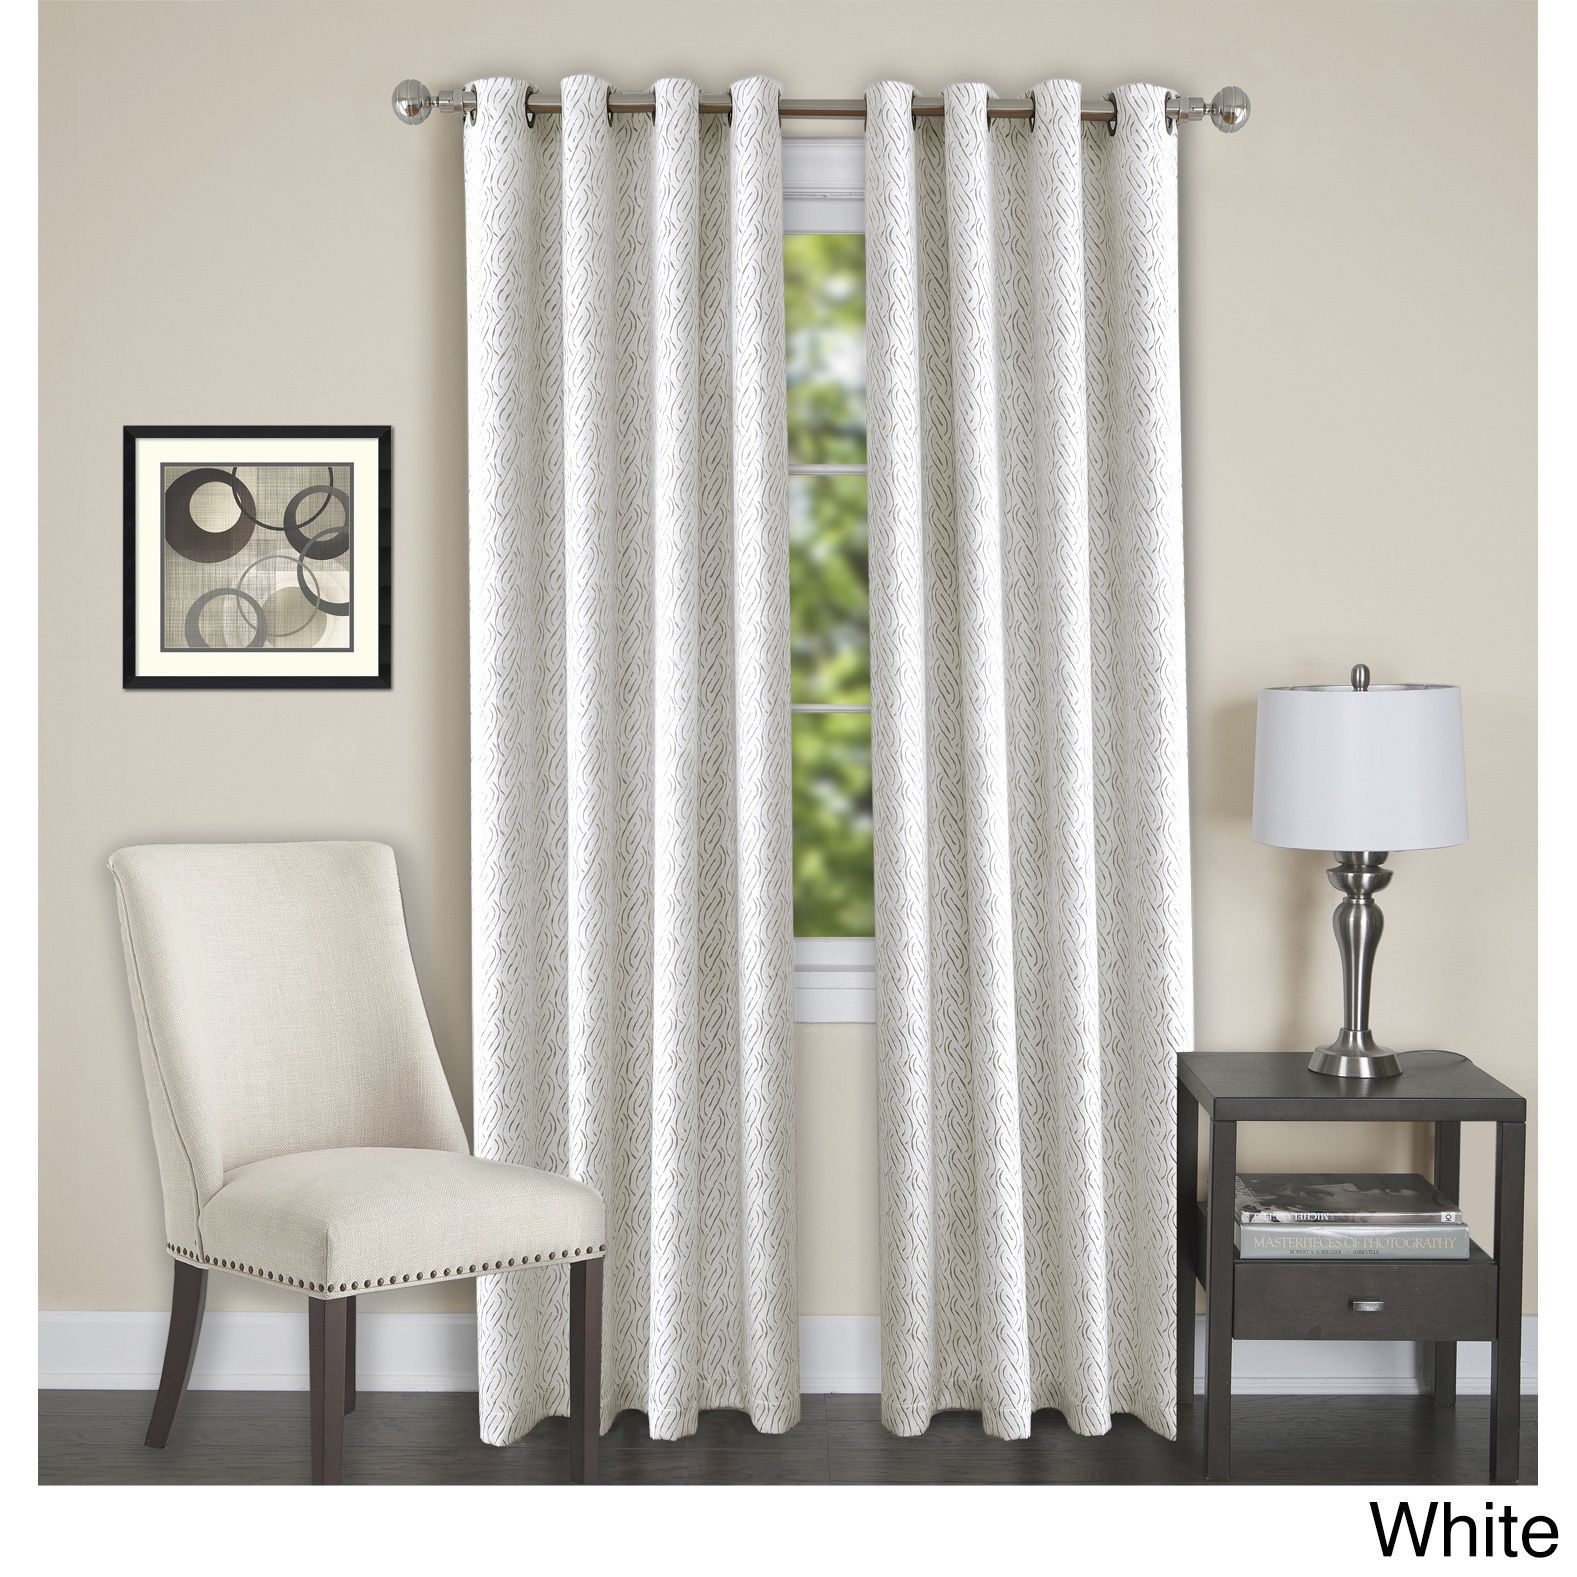 Achim Jensen 8 Grommet Blackout Window Curtain Panel White